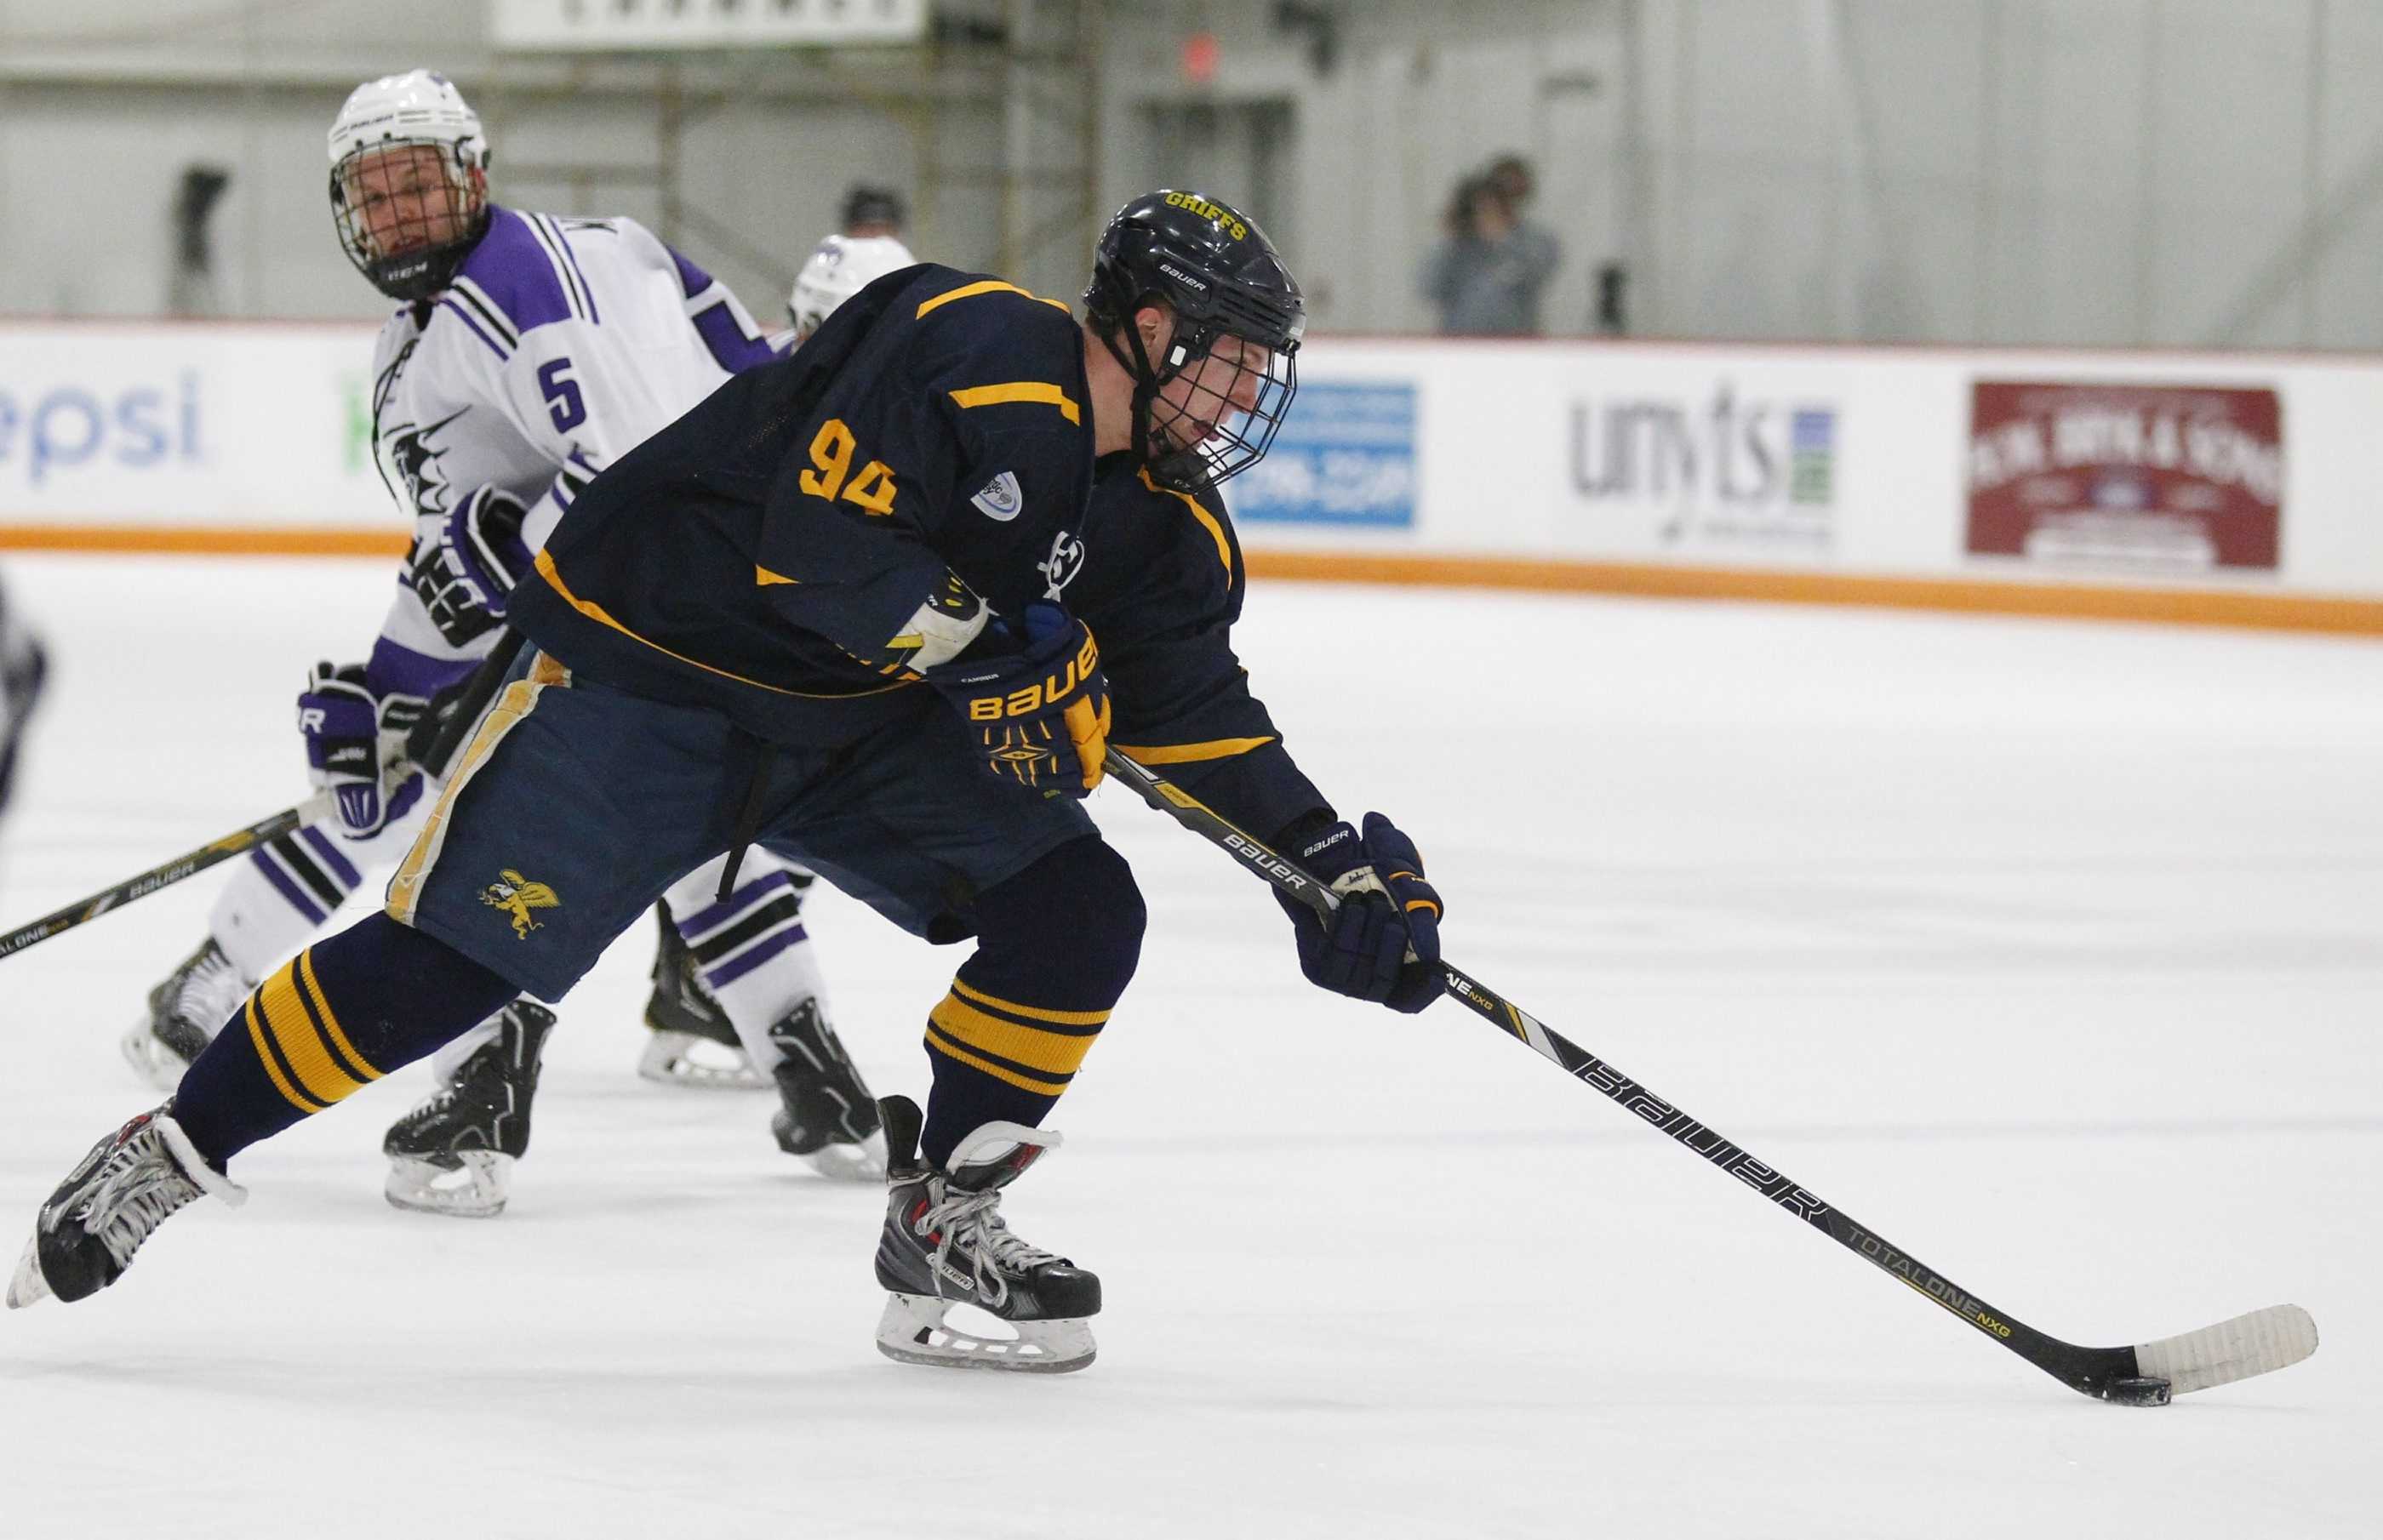 Matthew Grazen is a senior on the Canisius hockey team.